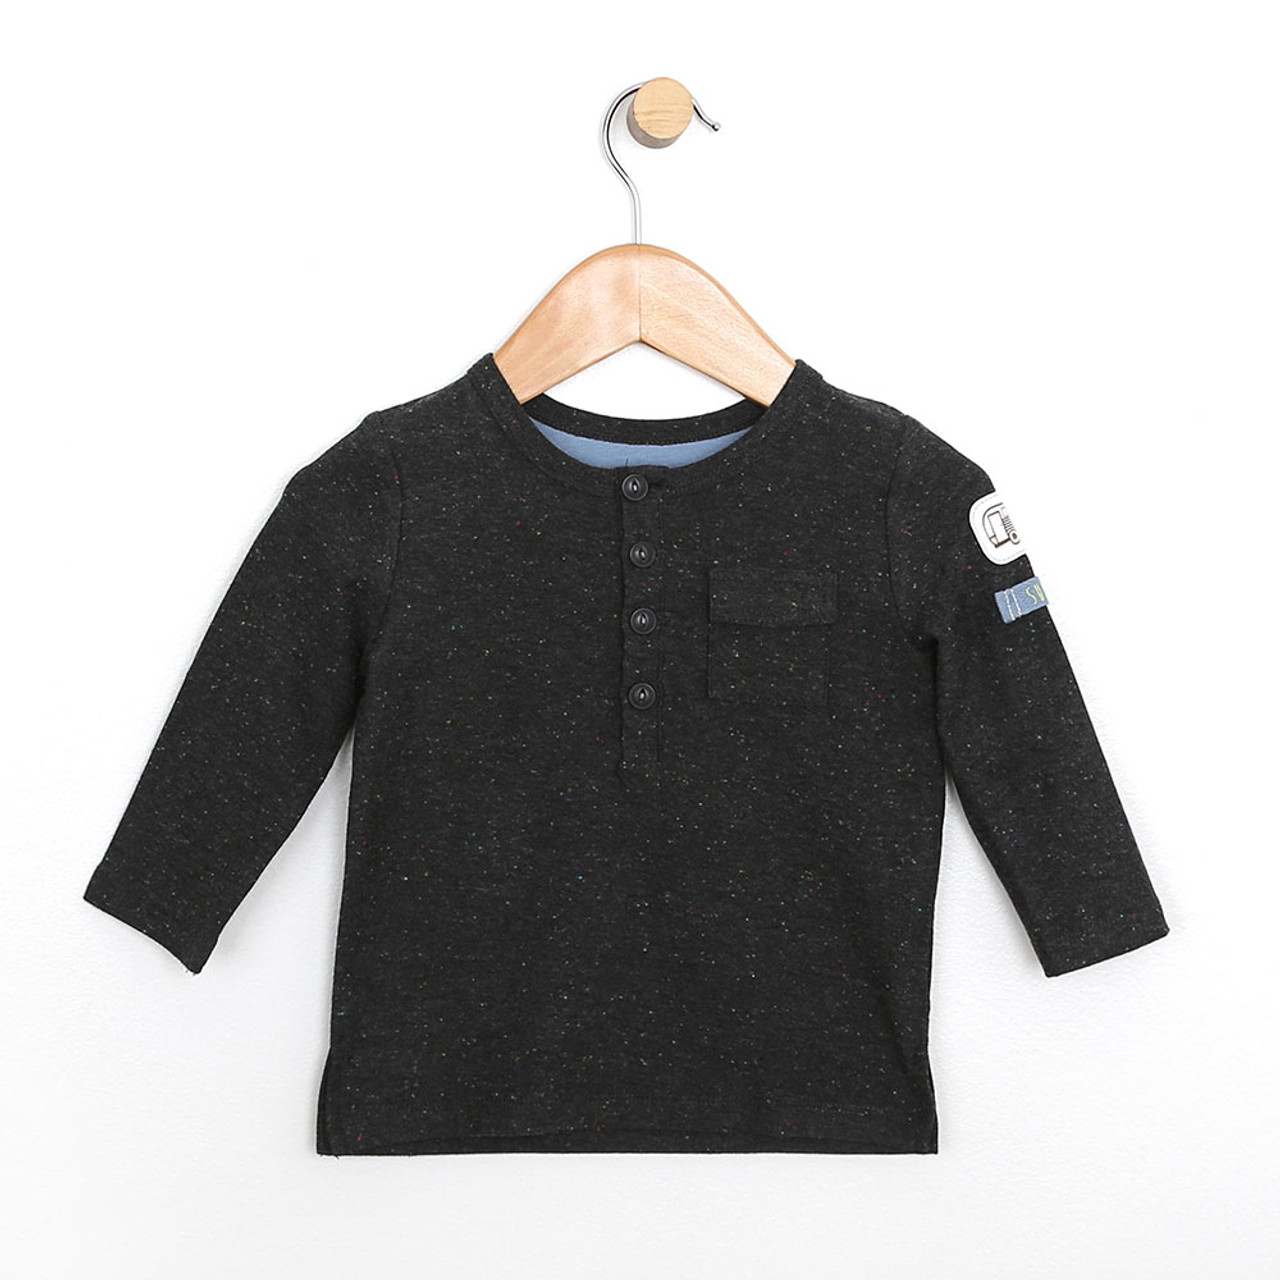 Baby Shirt Speckled Long Sleeve Shirt Boys Baby Infant Toddlers